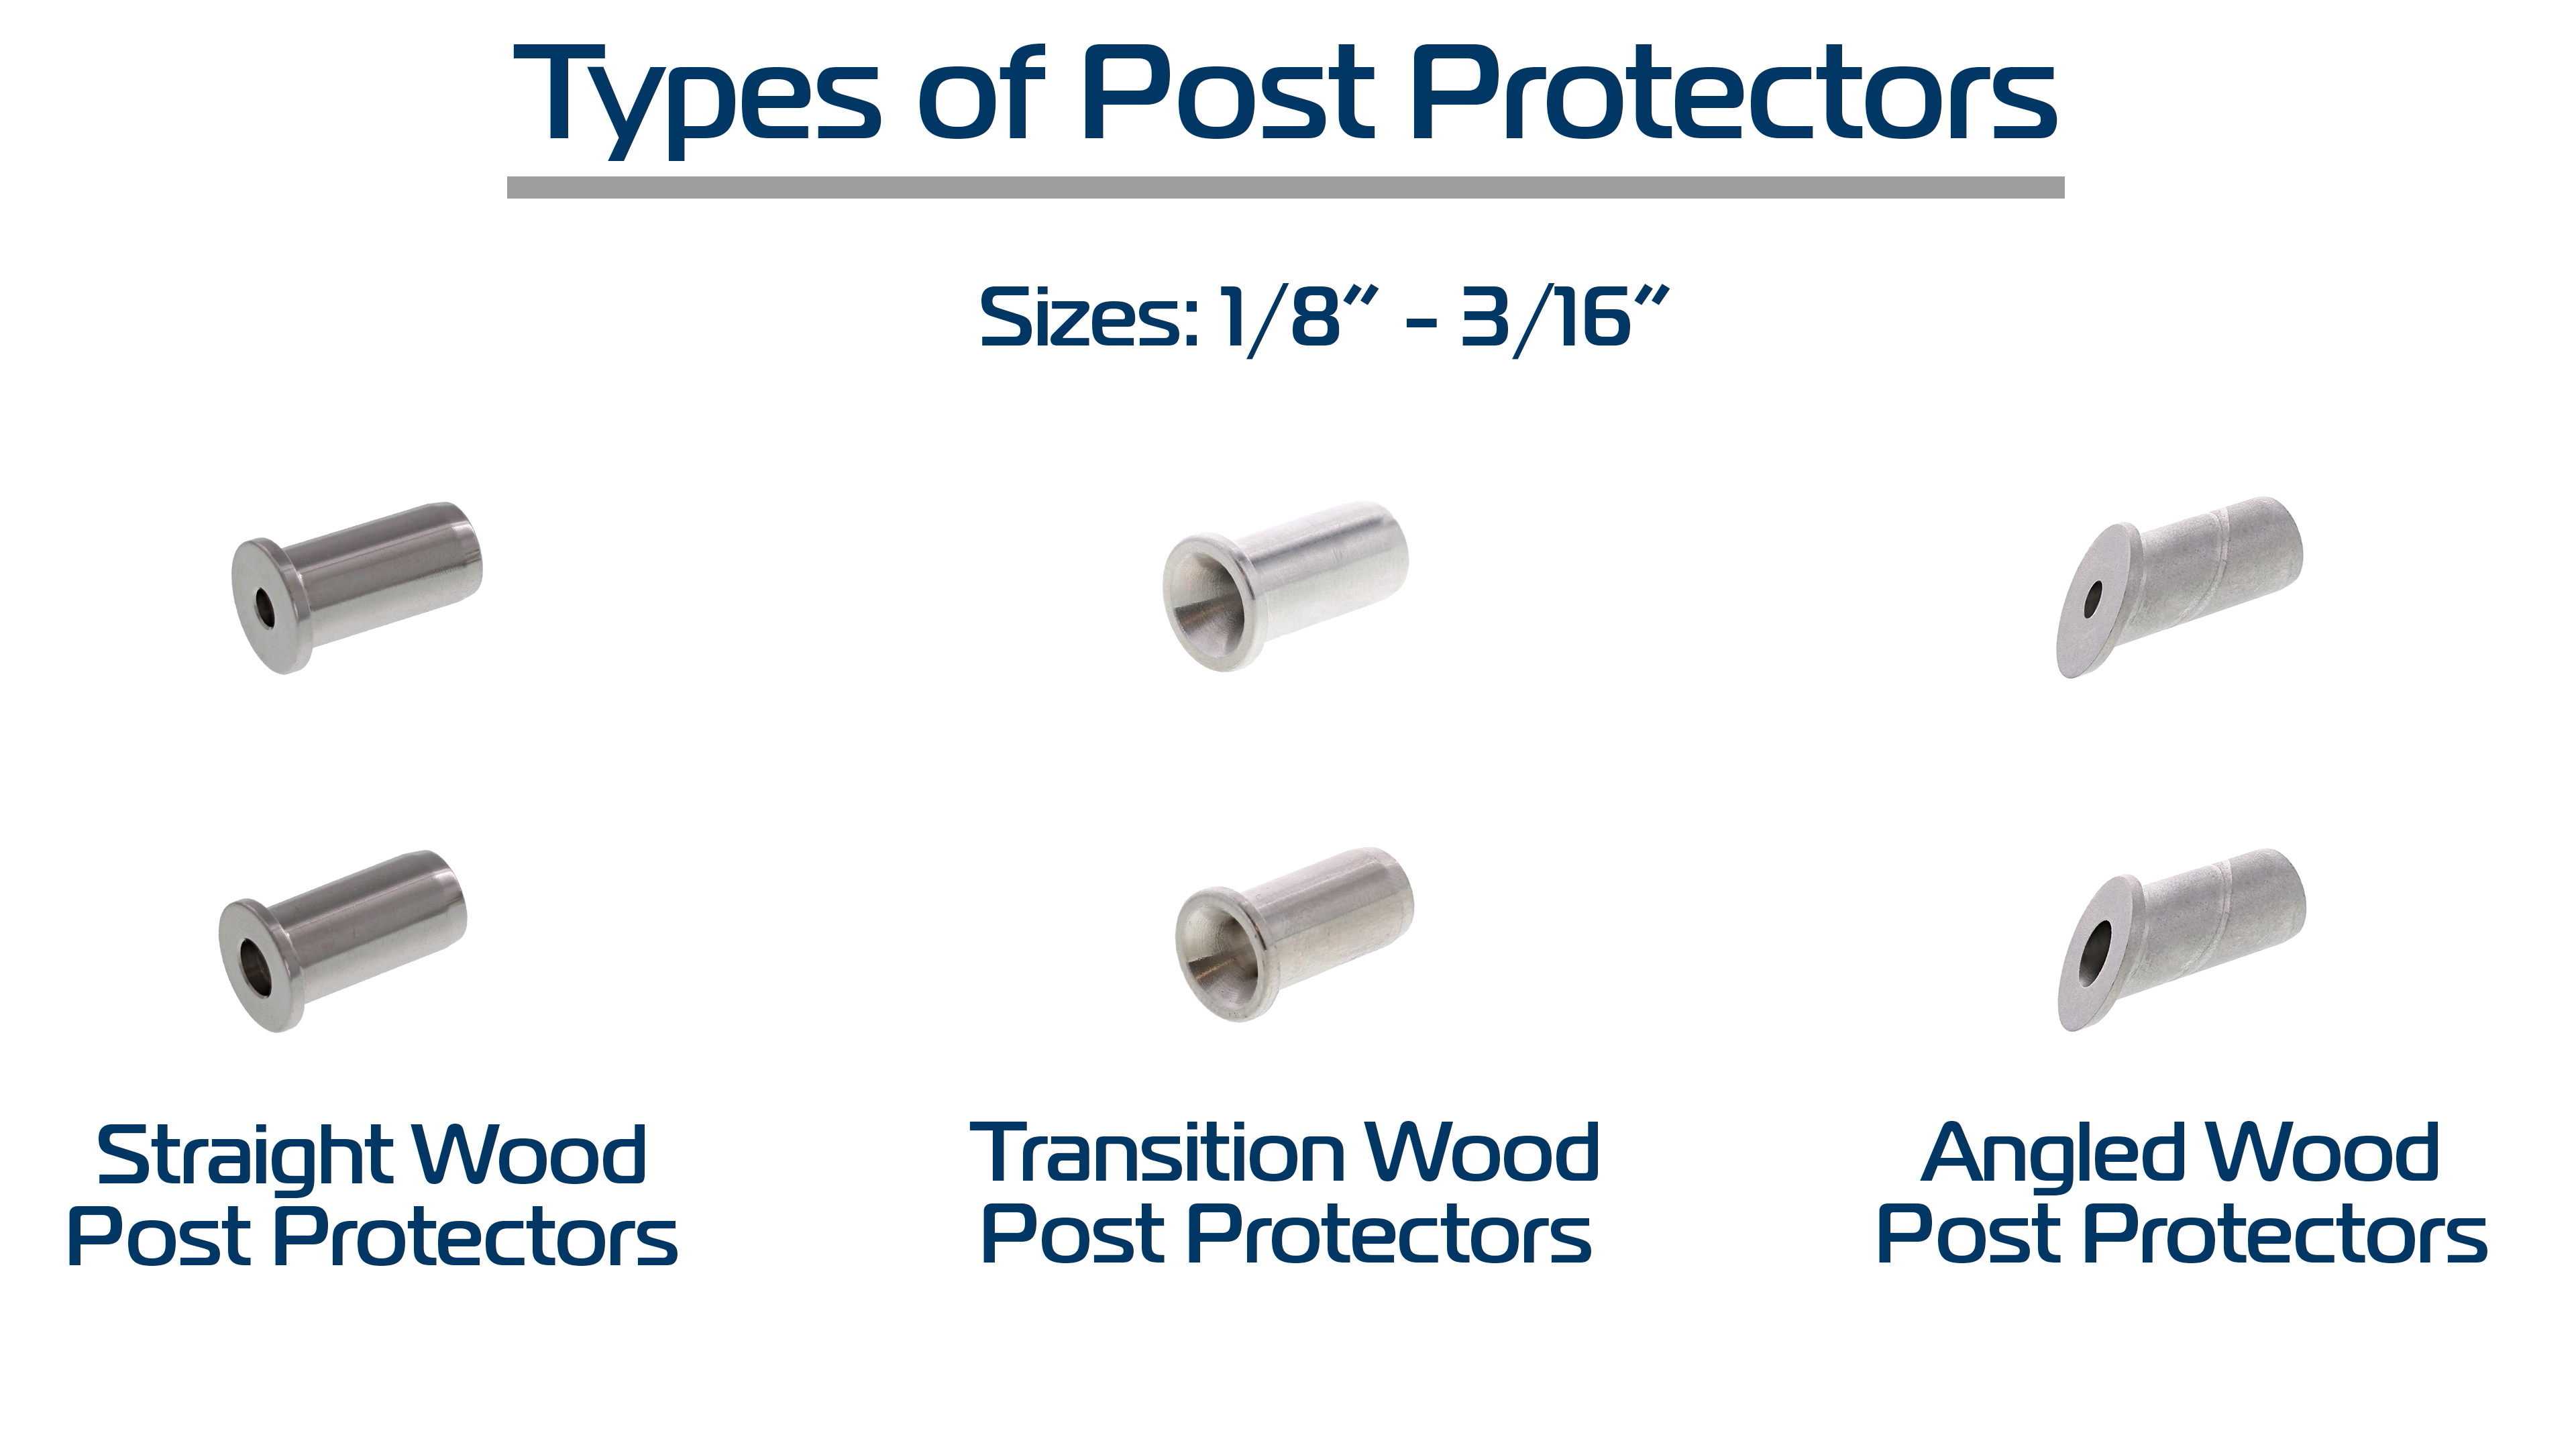 Types of Wood Post Protectors